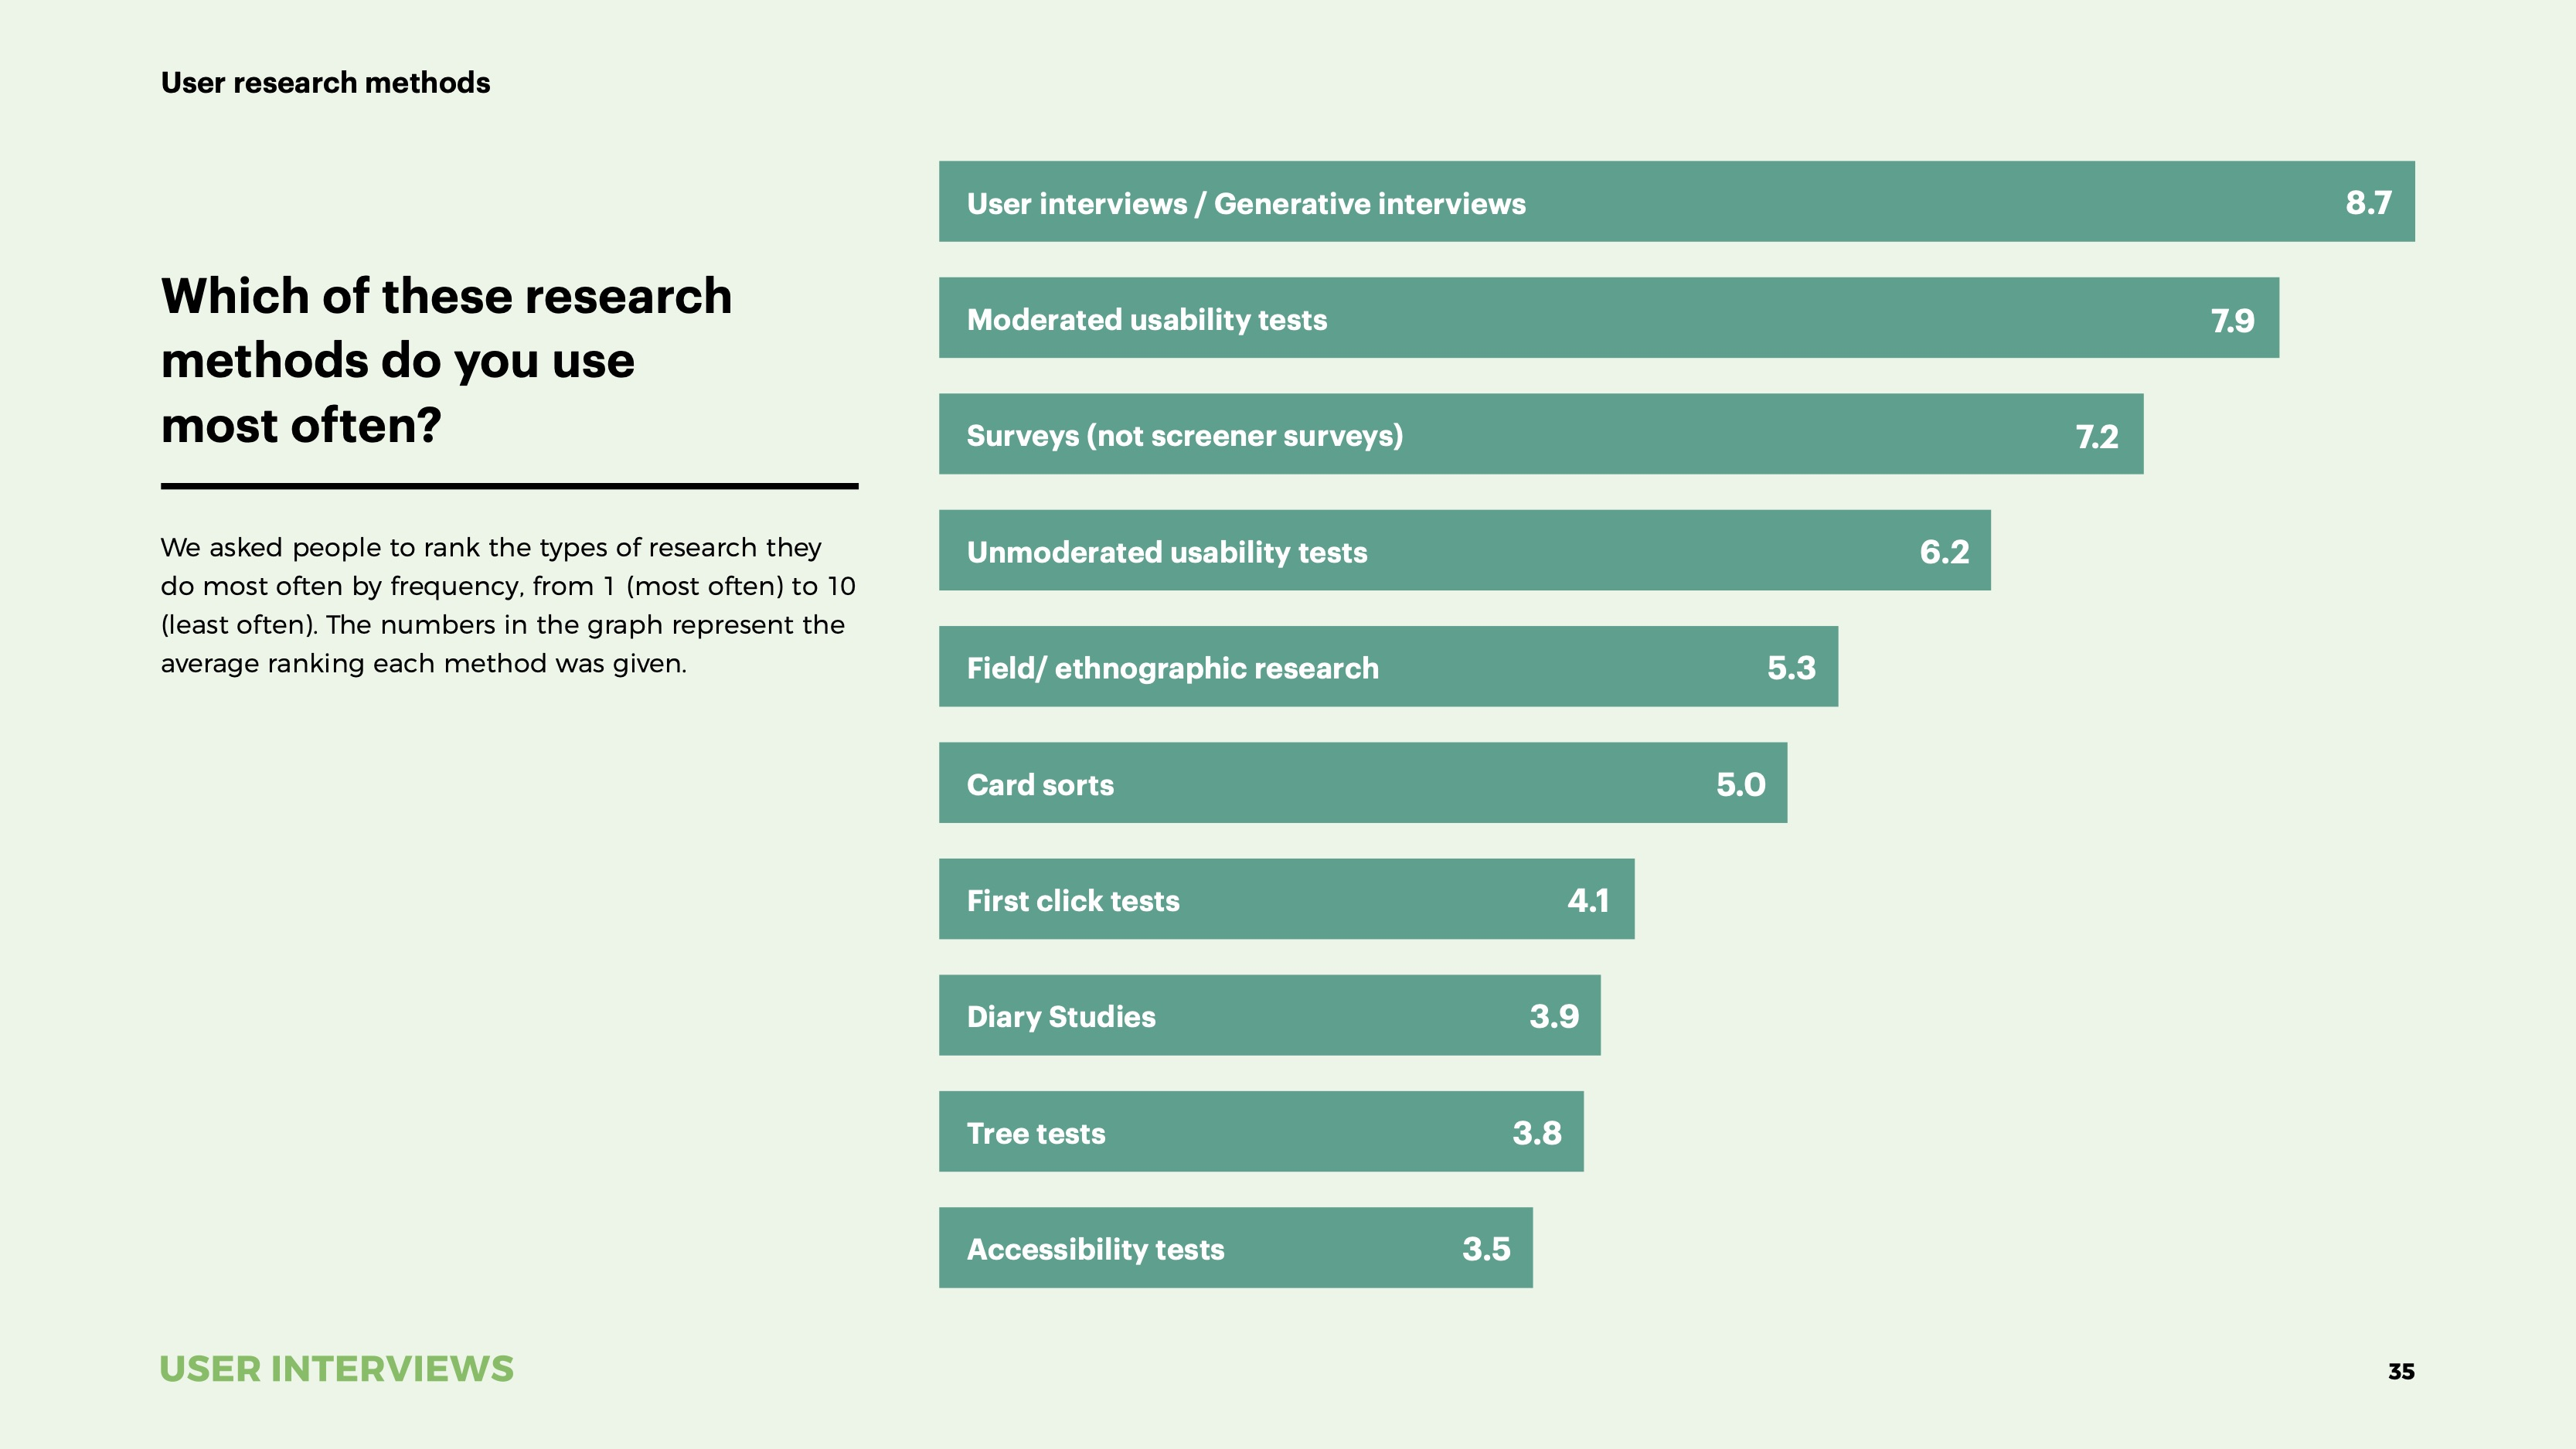 State of User Research 2021 report research methods